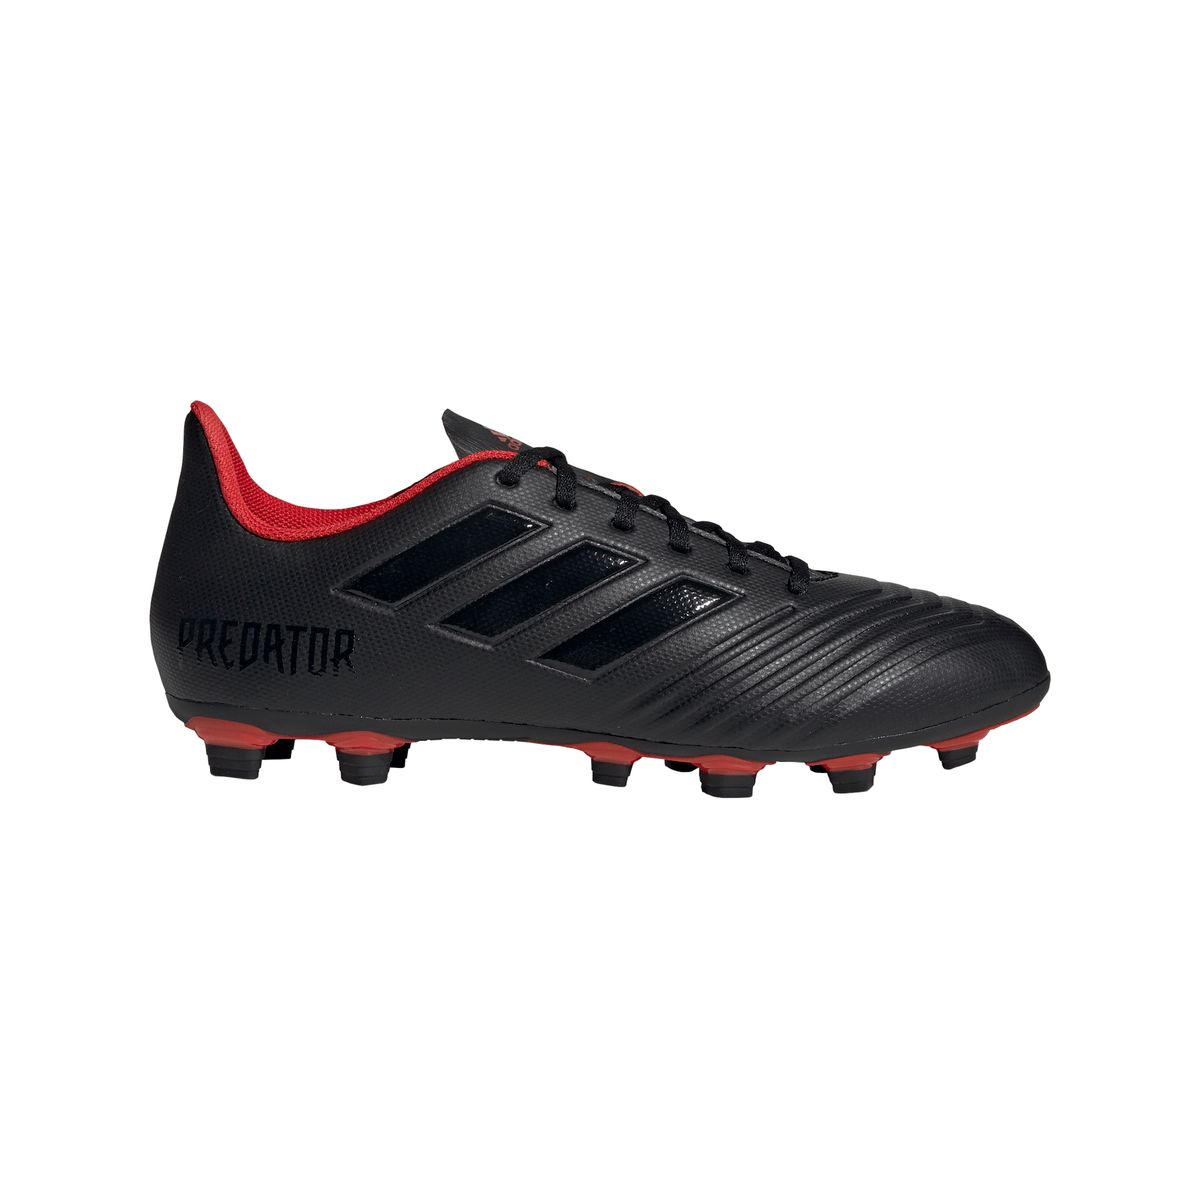 adidas Predator 19.4 Mens Flexible Ground Soccer Cleat